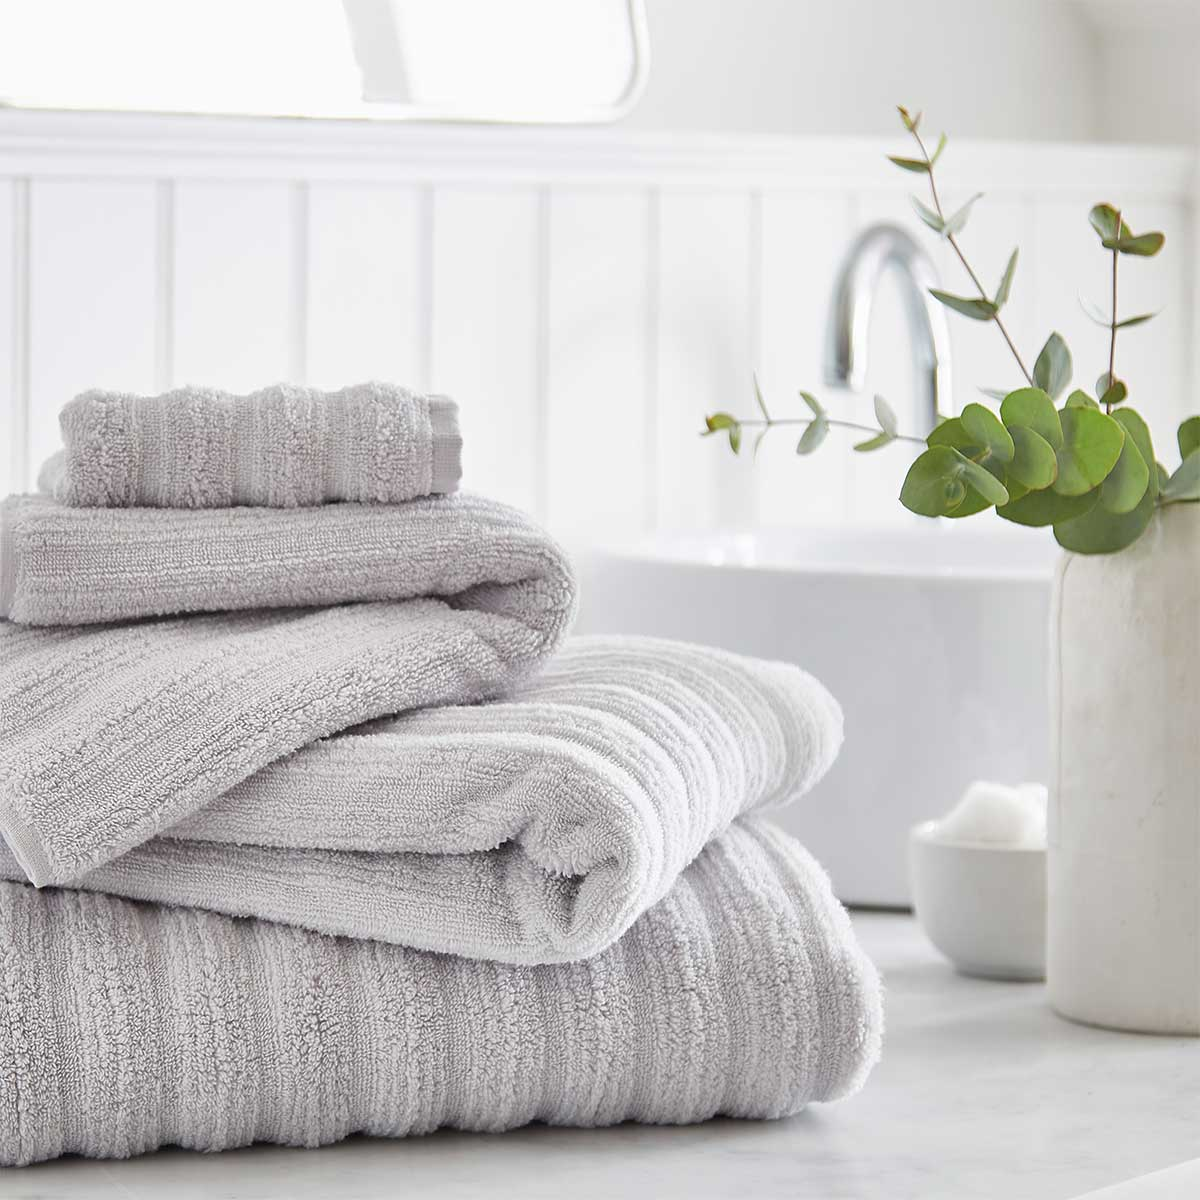 How To Choose The Perfect Bathroom Towel